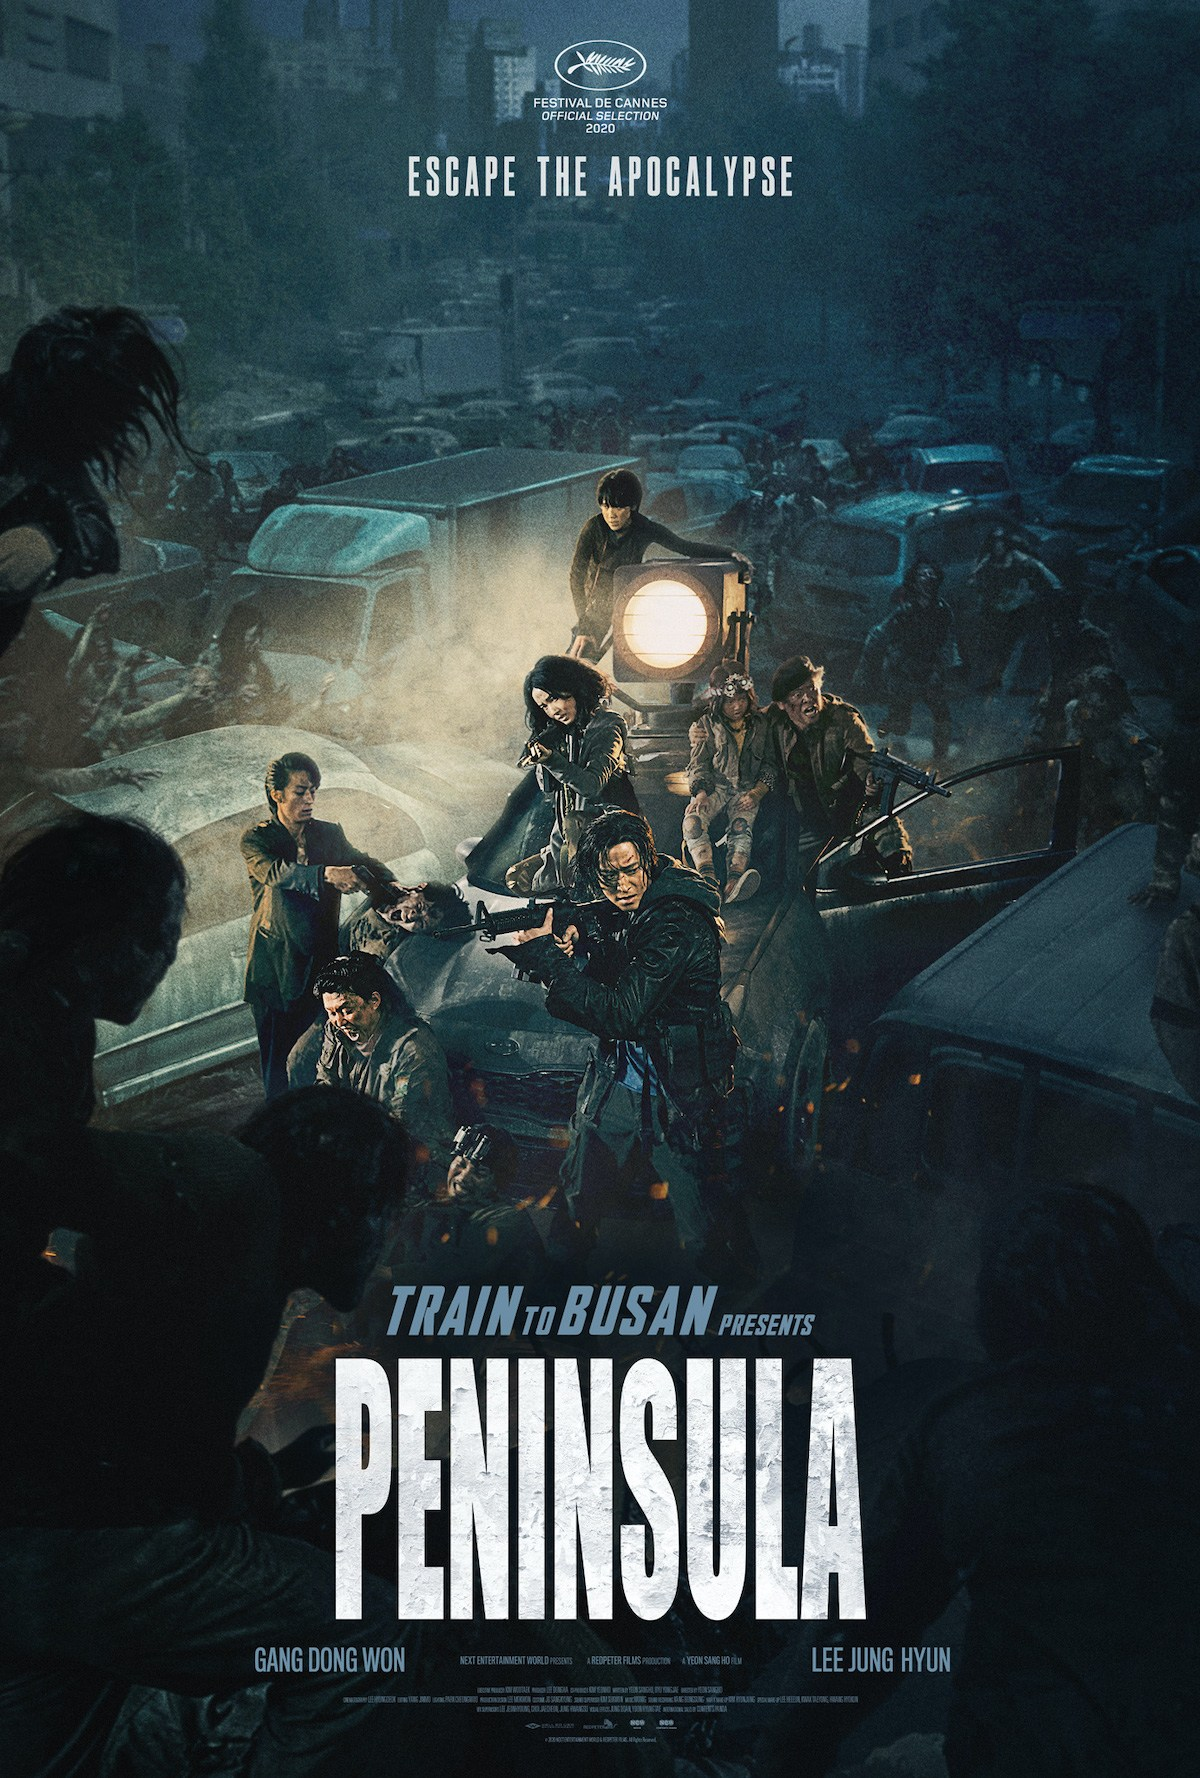 Train to Busan Presents Peninsula Poster 1